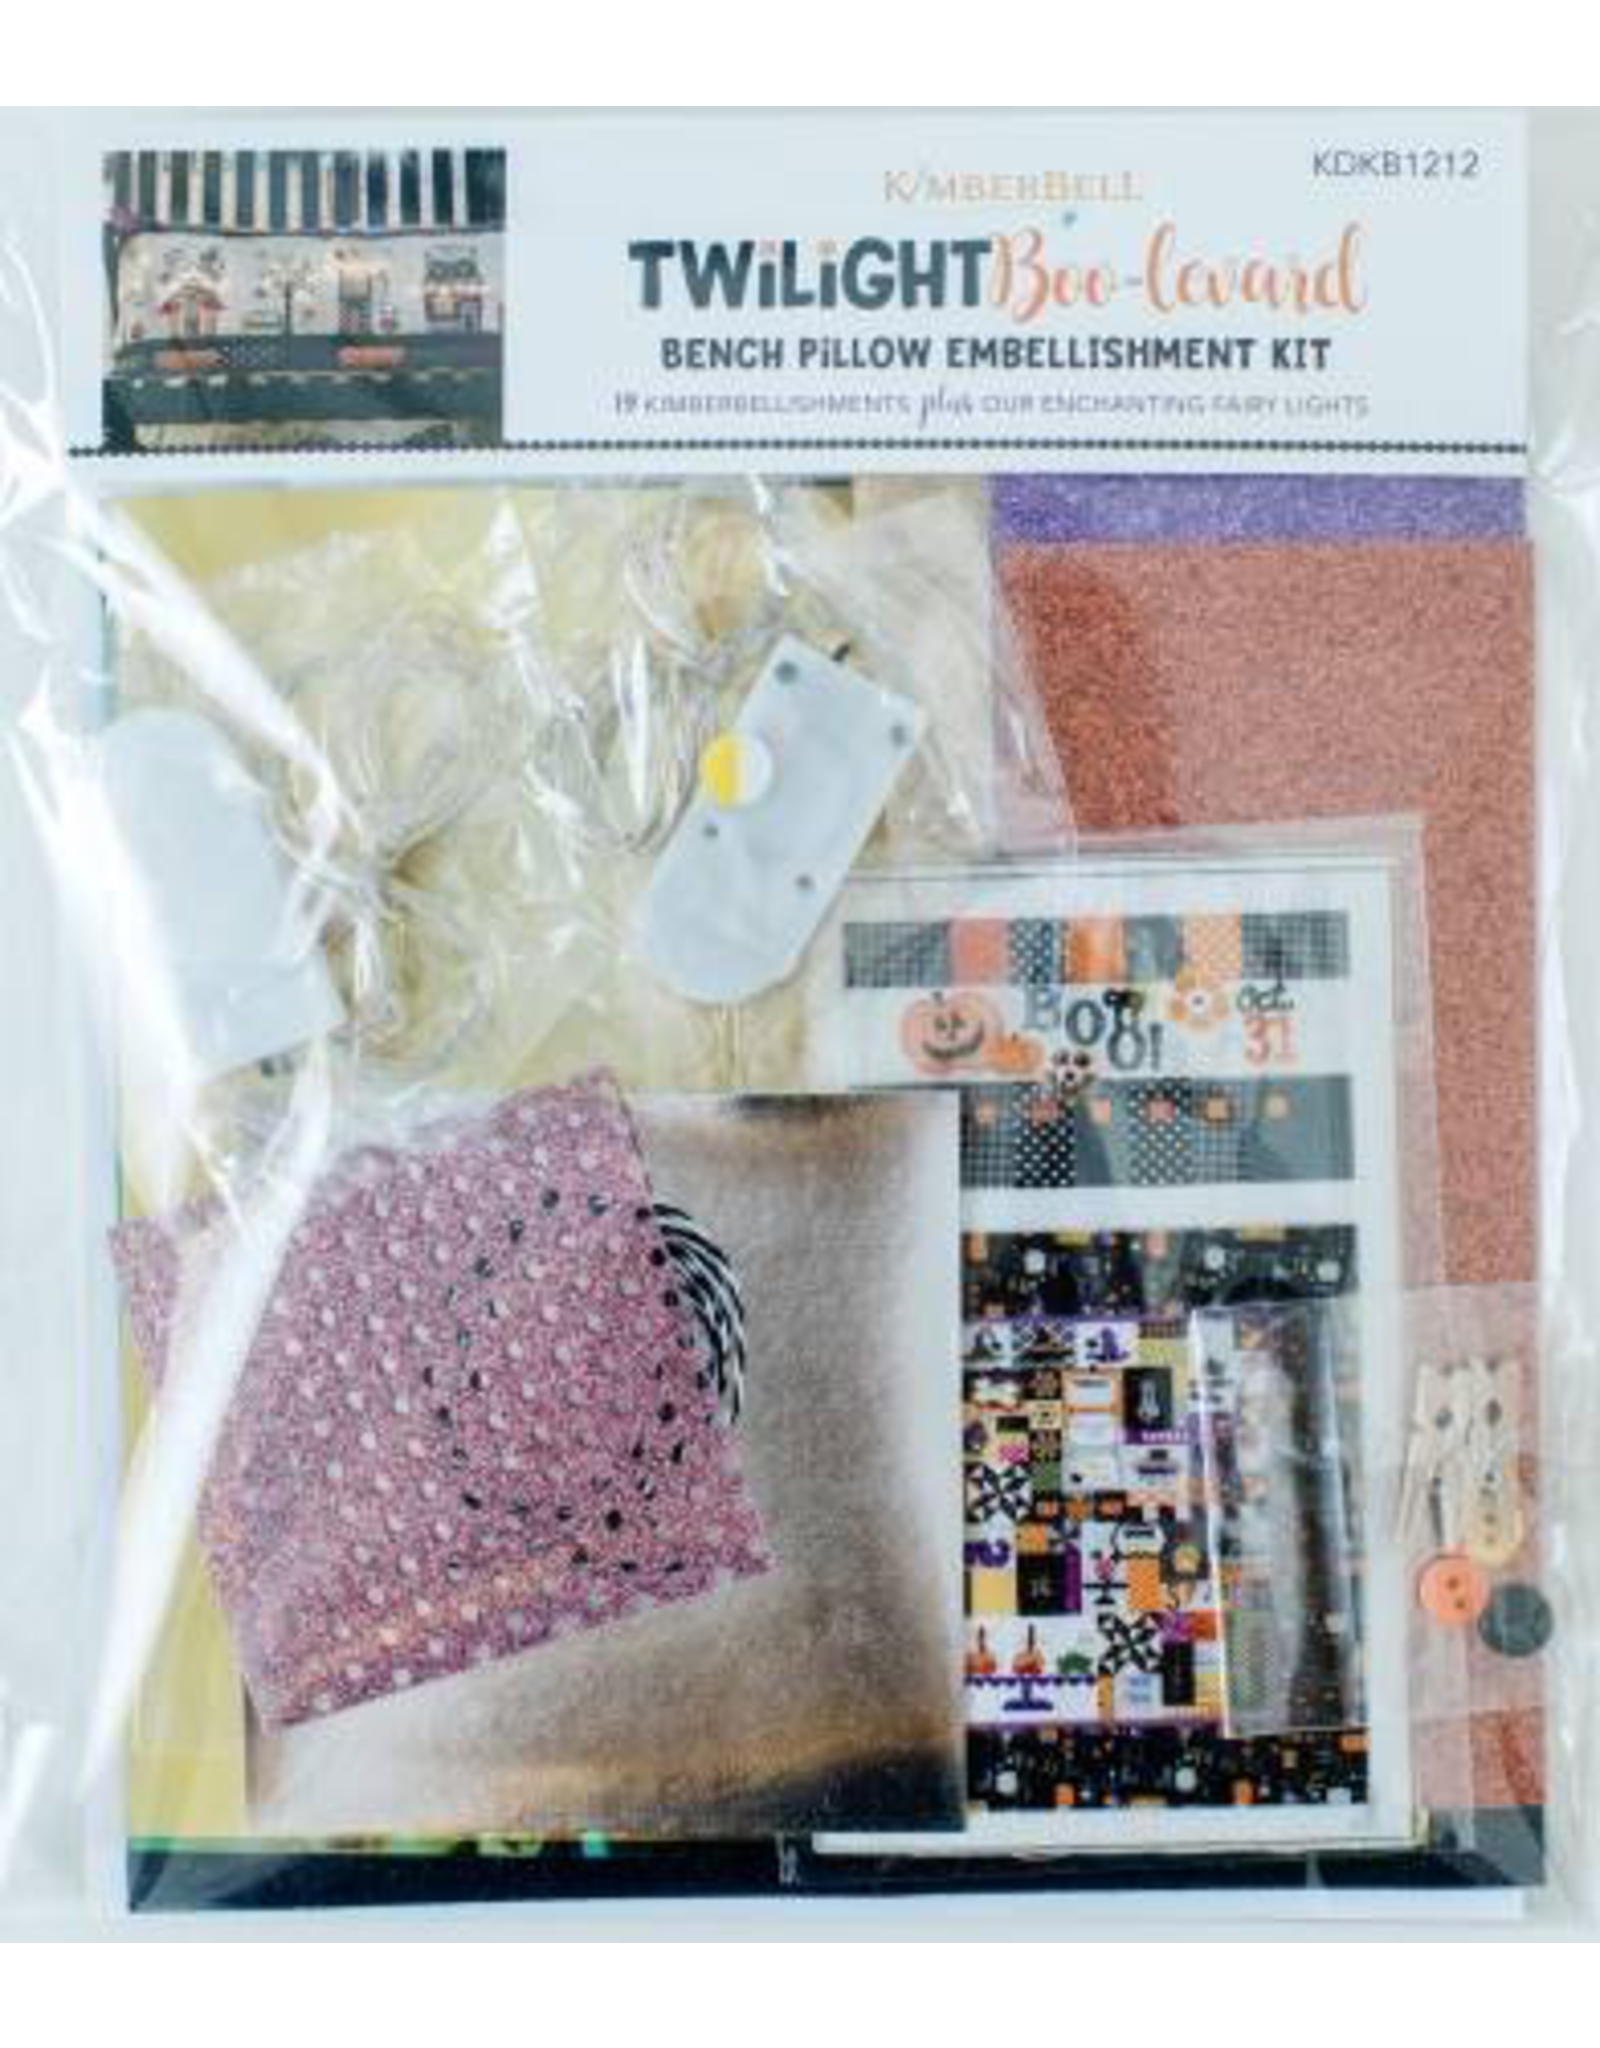 Twilight Boo-levard - Embellishment Kit